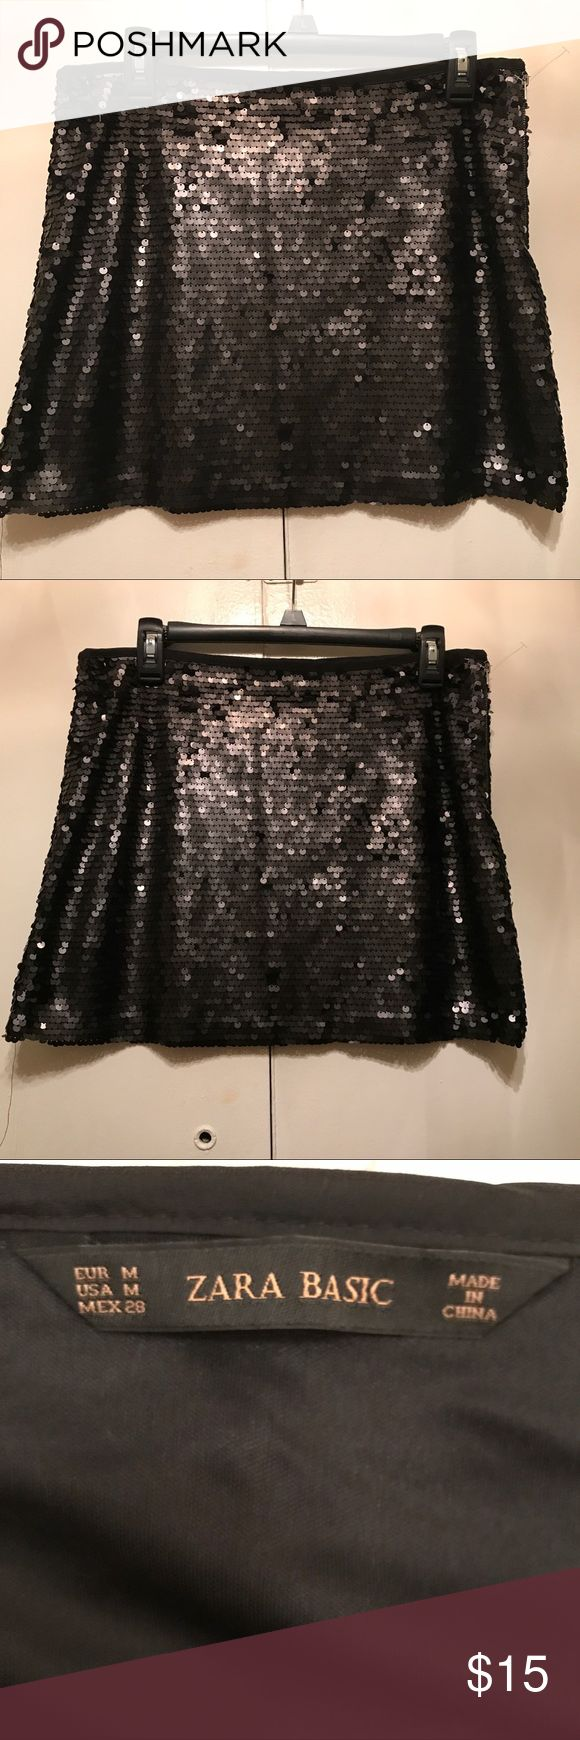 "Zara Basic Black Sequins Skirt SZ Medium Zara Basic Black Sequins Skirt SZ Medium NWOT Measurements 16"" Waist Length 15"" Long Zara Skirts Mini"